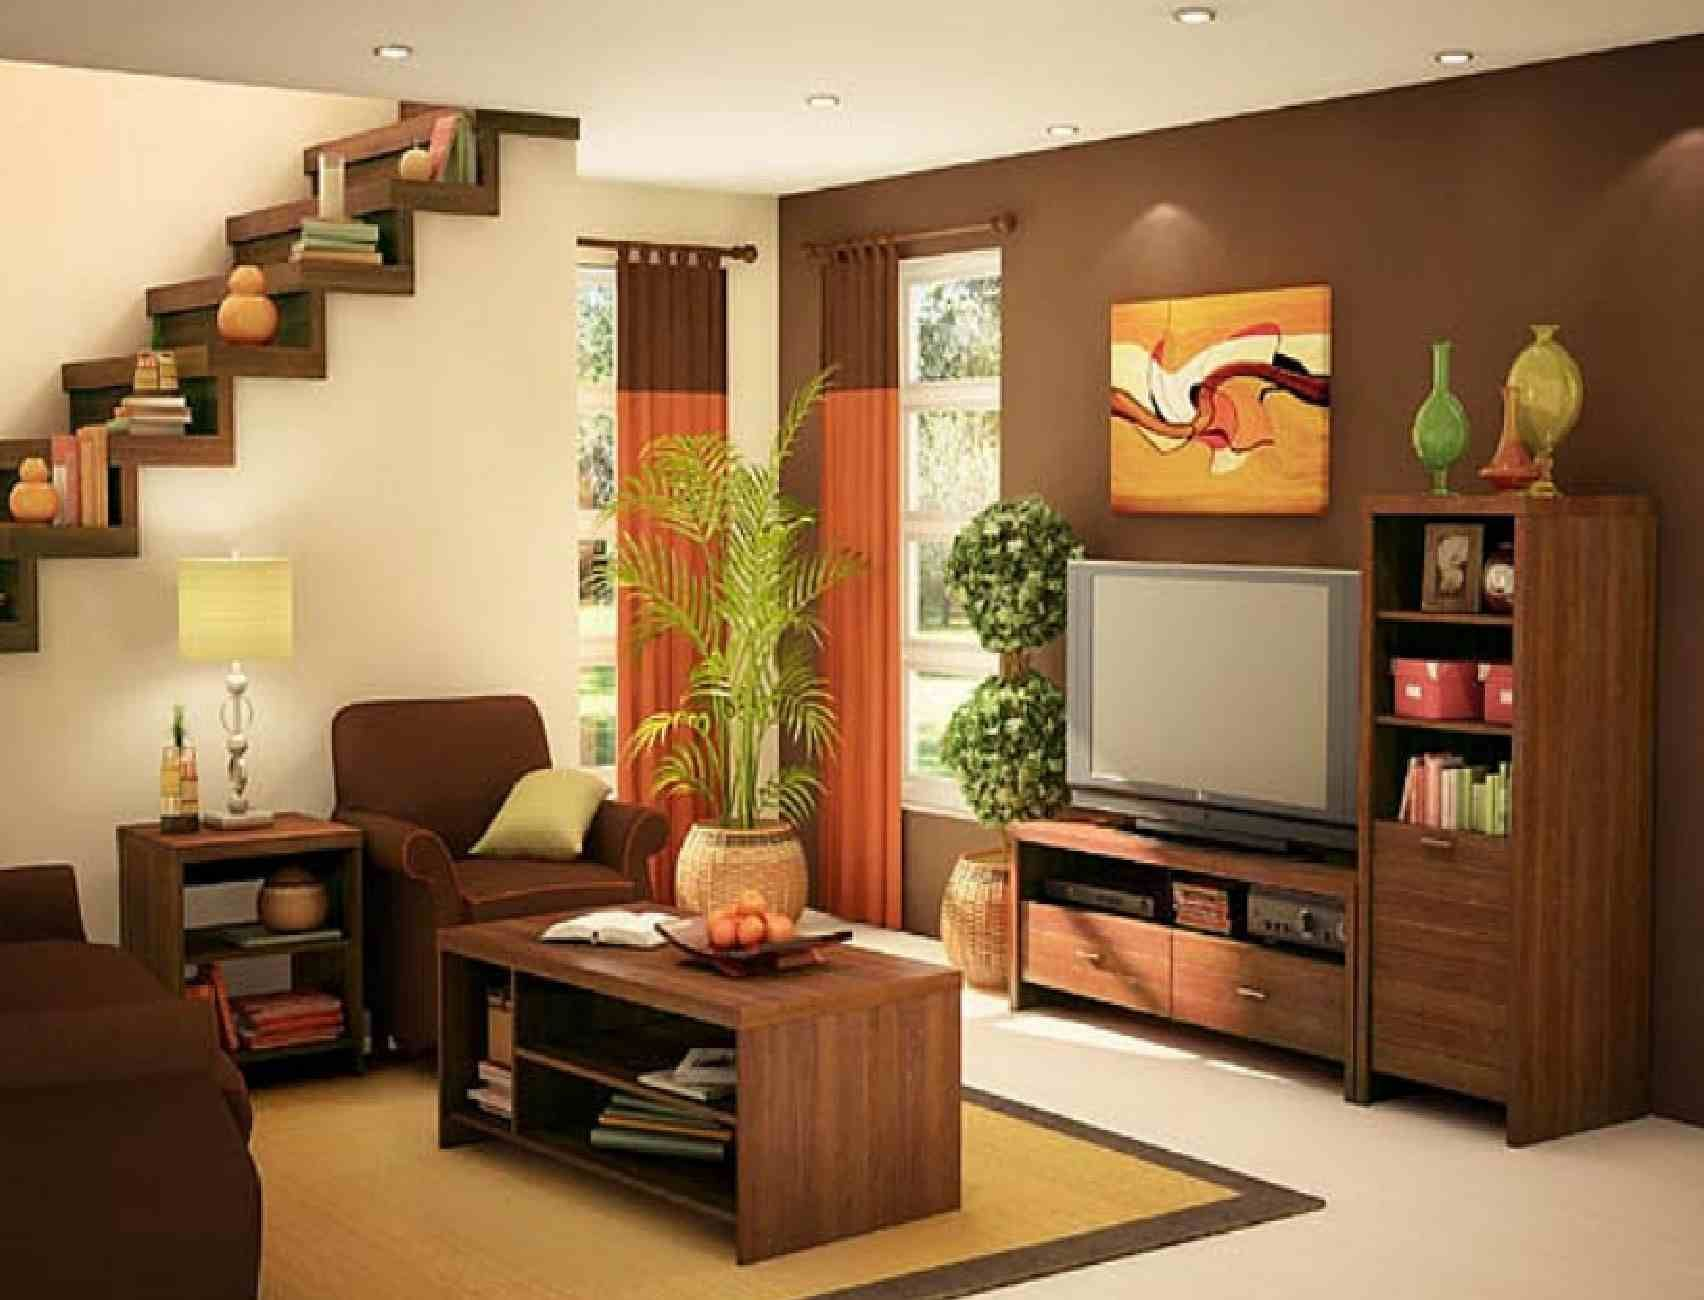 Excellent small apartment living room idea with brown and cream wall paint colors and brown arm